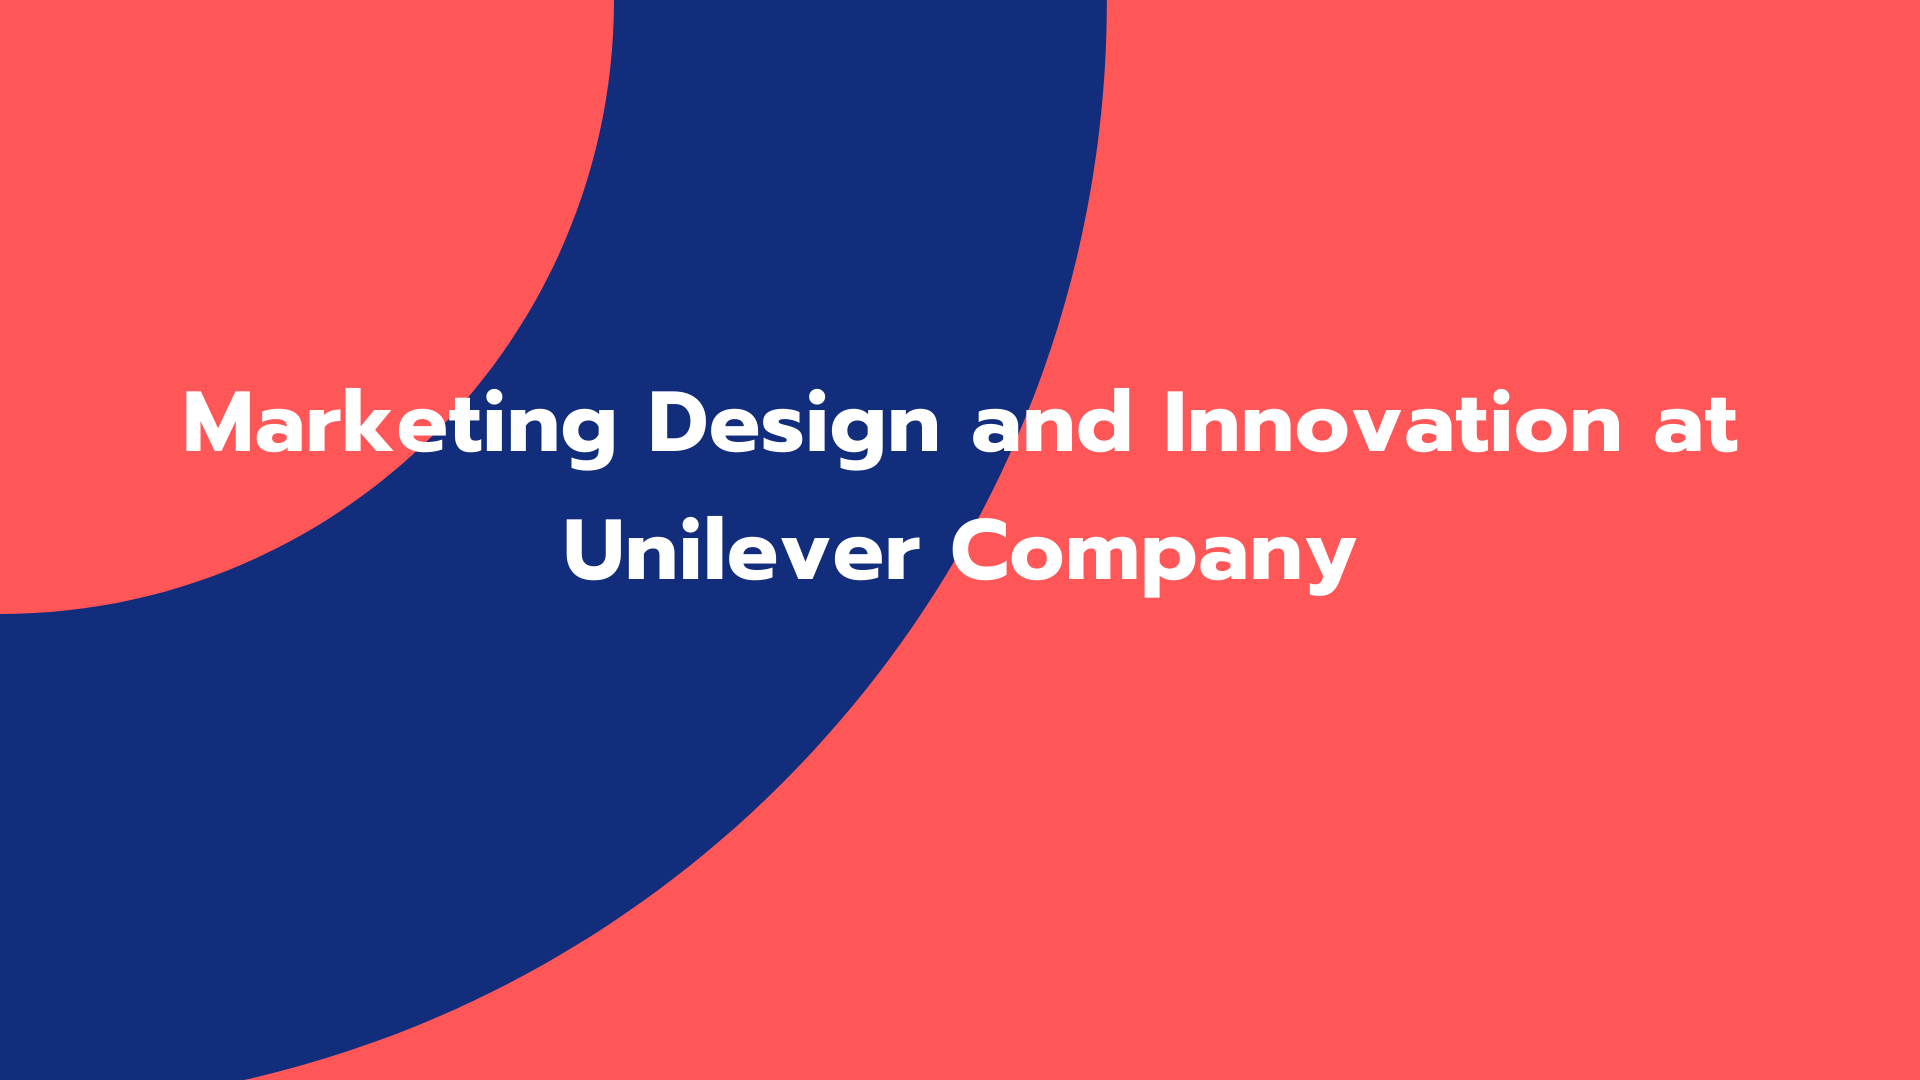 Marketing Design and Innovation at Unilever Company